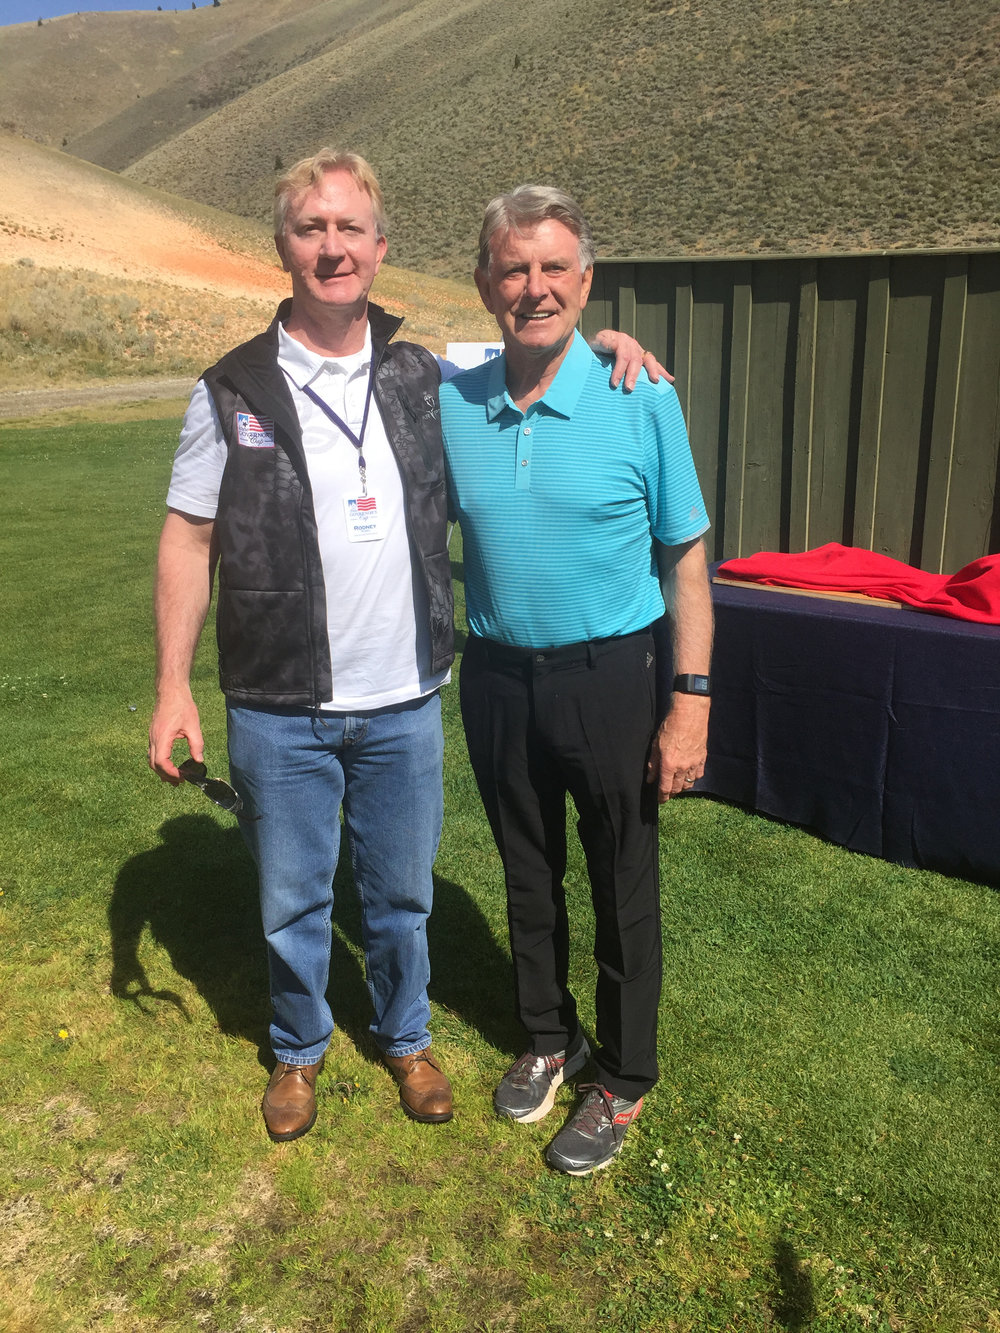 Rodney Reider out with the Governor of Idaho, shooting practice